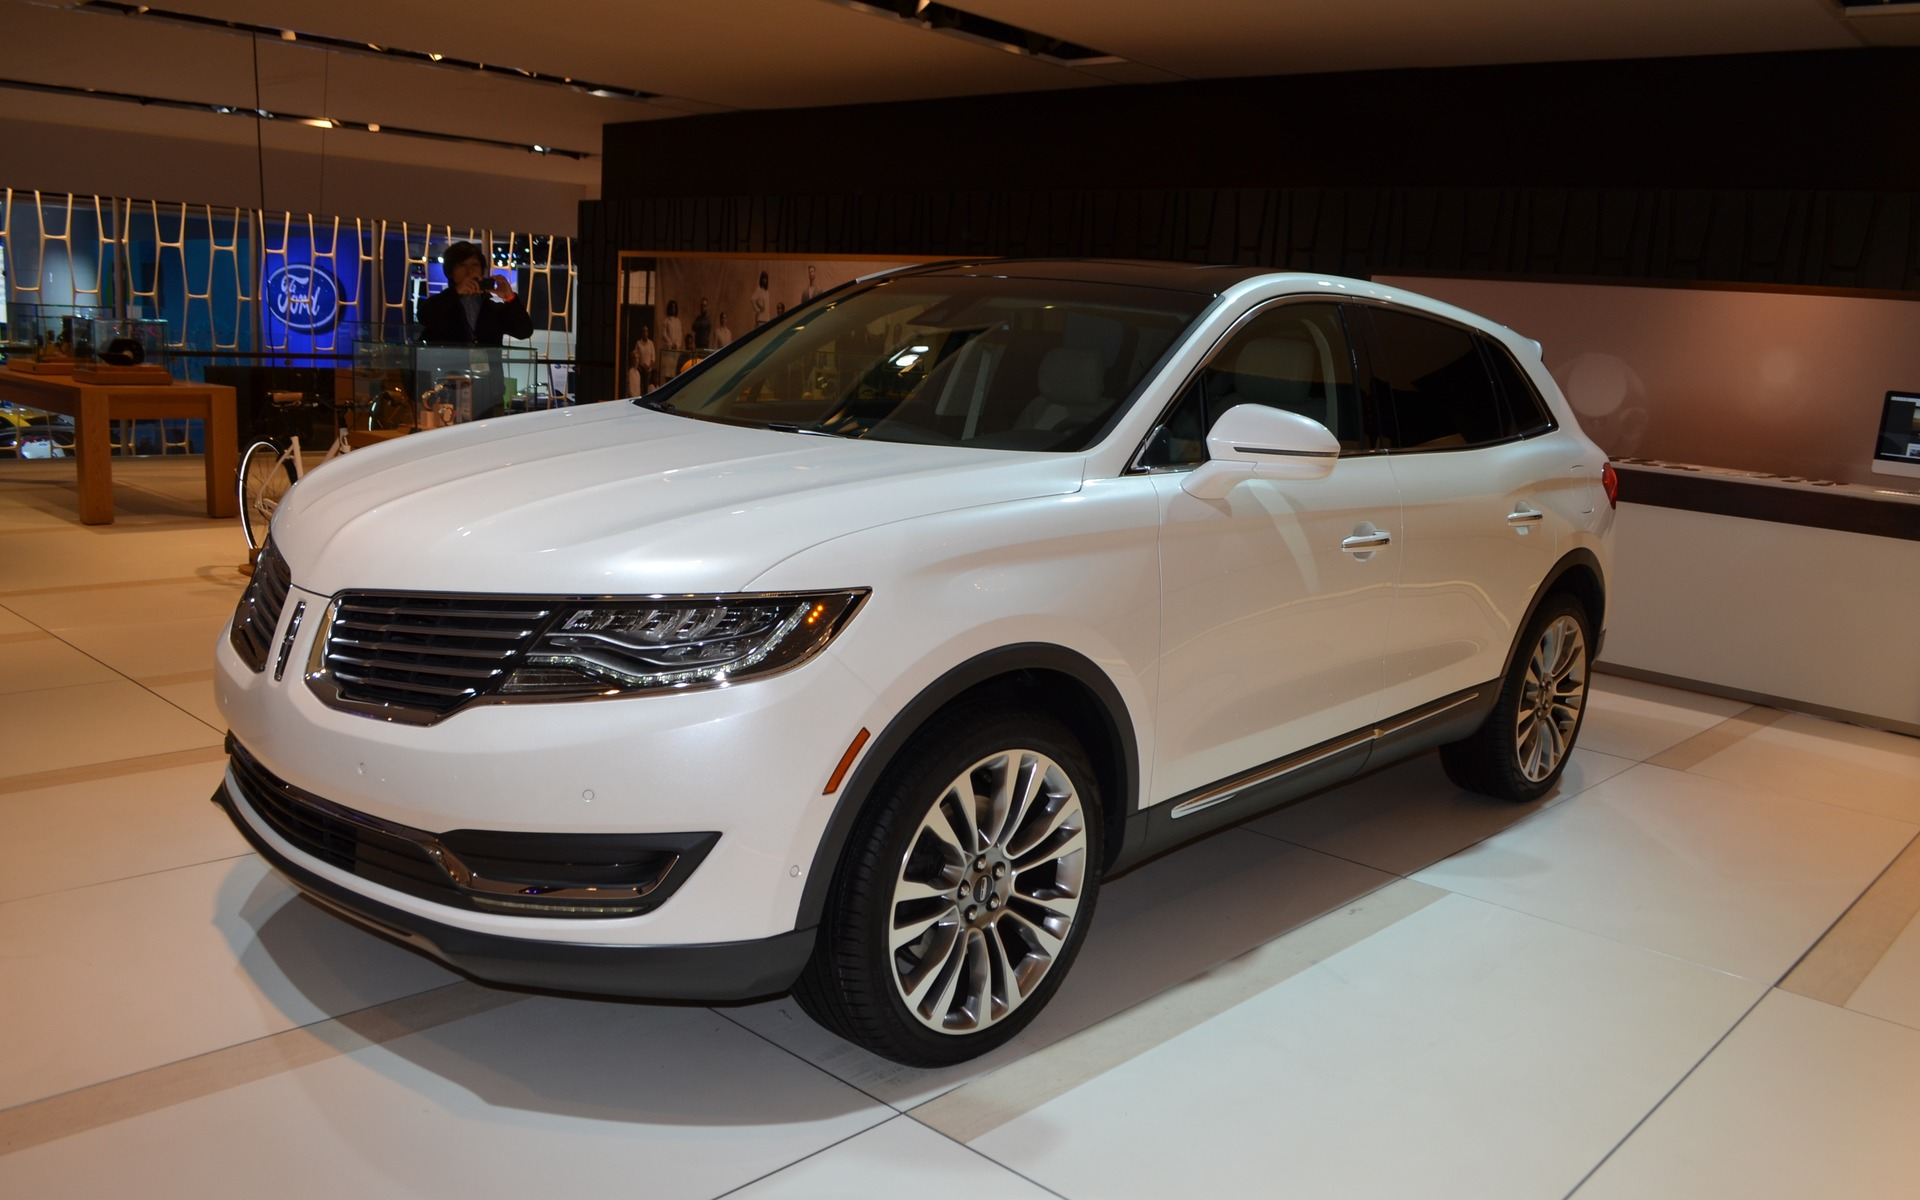 drive premiere cladding but wheel went color less it look inside news ford wouldn mkx upscale review the black exterior lost body arches automobile lincoln around heavy with not more only bring page t suv front if forums discussion and